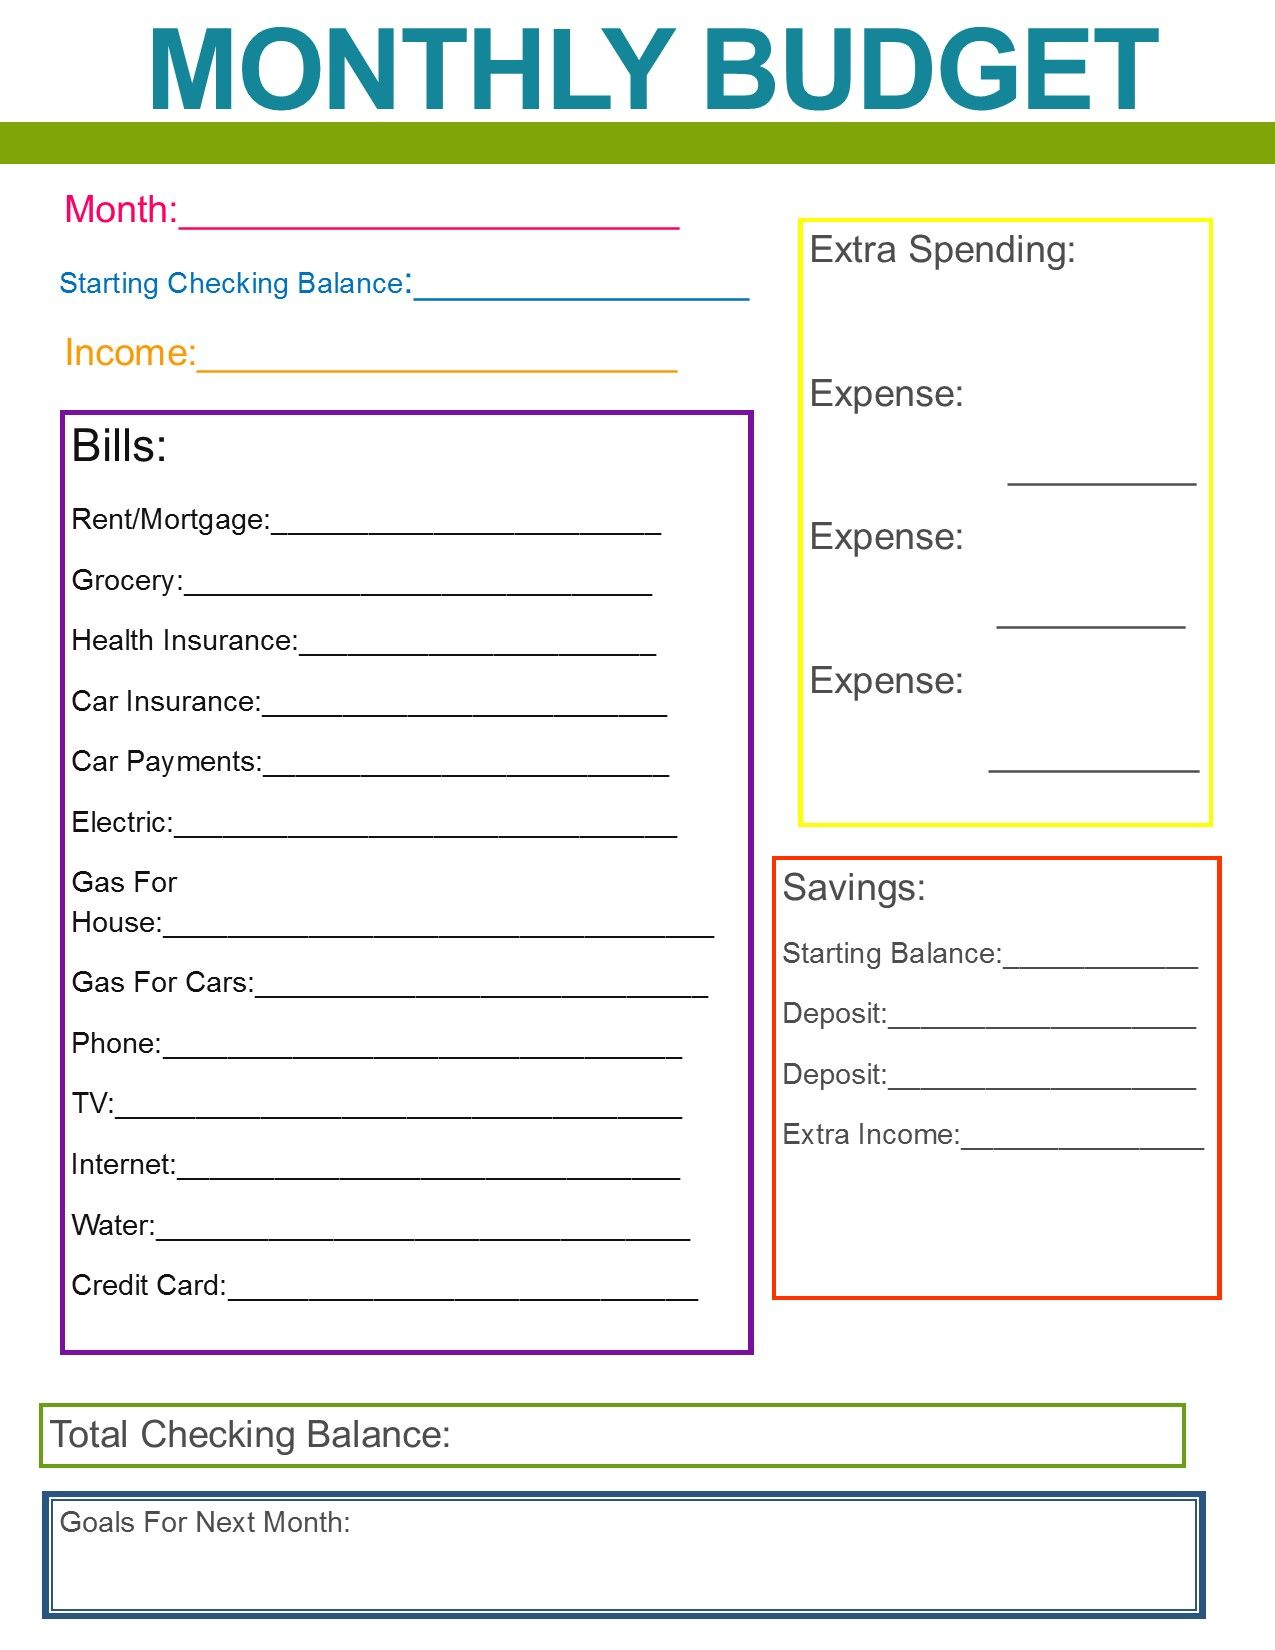 Worksheets Household Budget Worksheet Printable monthly family budget budgeting organizations and organizing thinking outside the pot